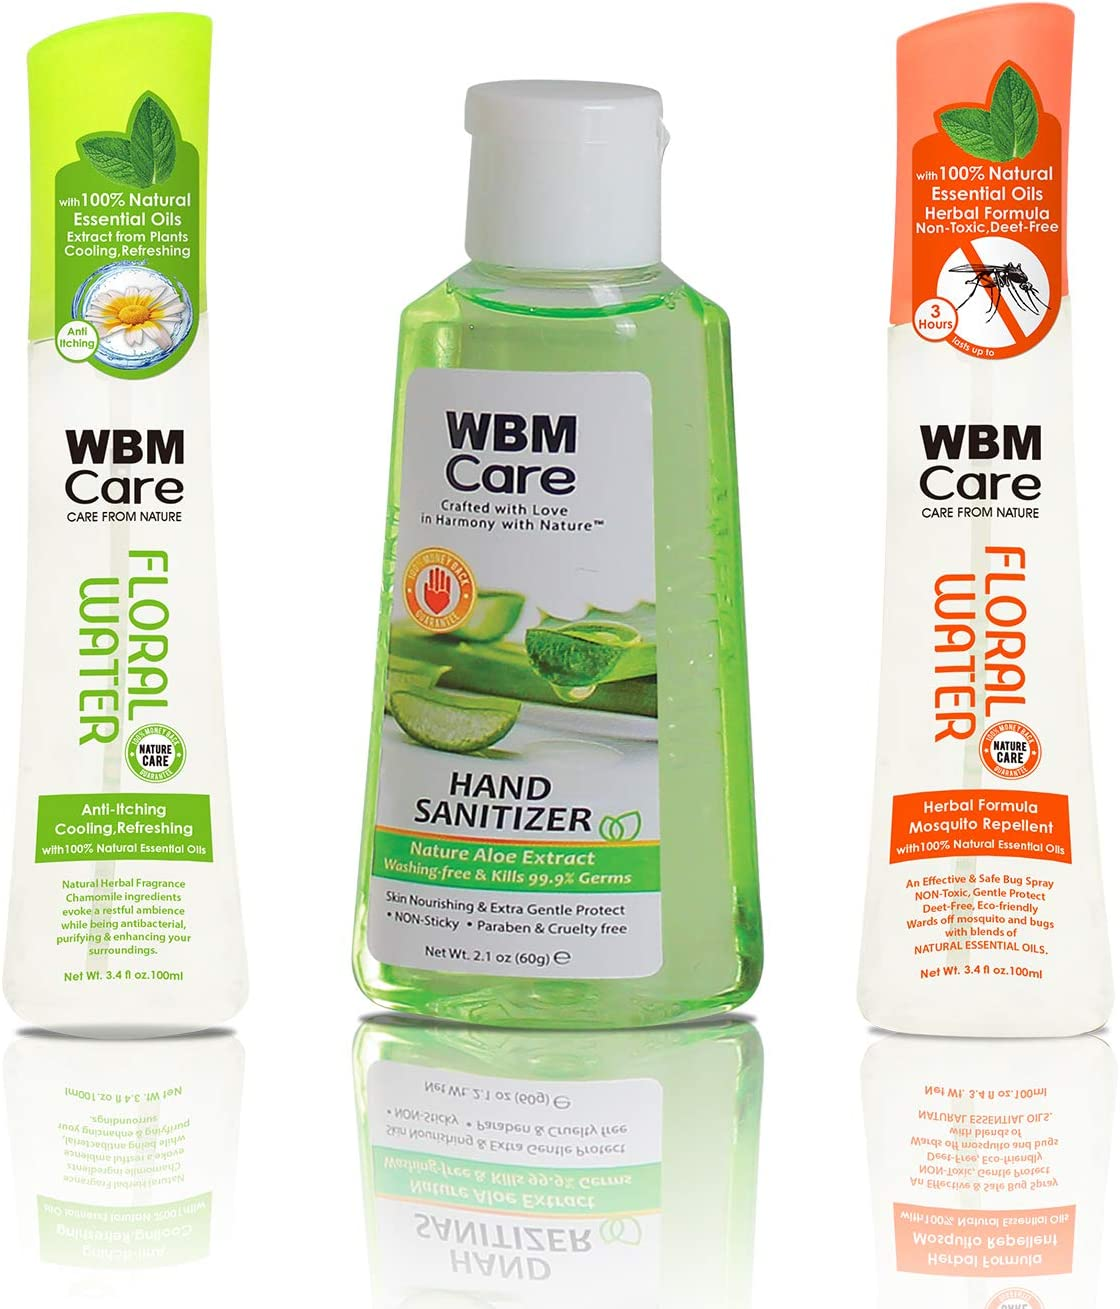 WBM Care Insect Repellent & Cooling Refreshing Anti Itch Pump Spray with Hand Sanitizer, Gift Set, (3 Pack)